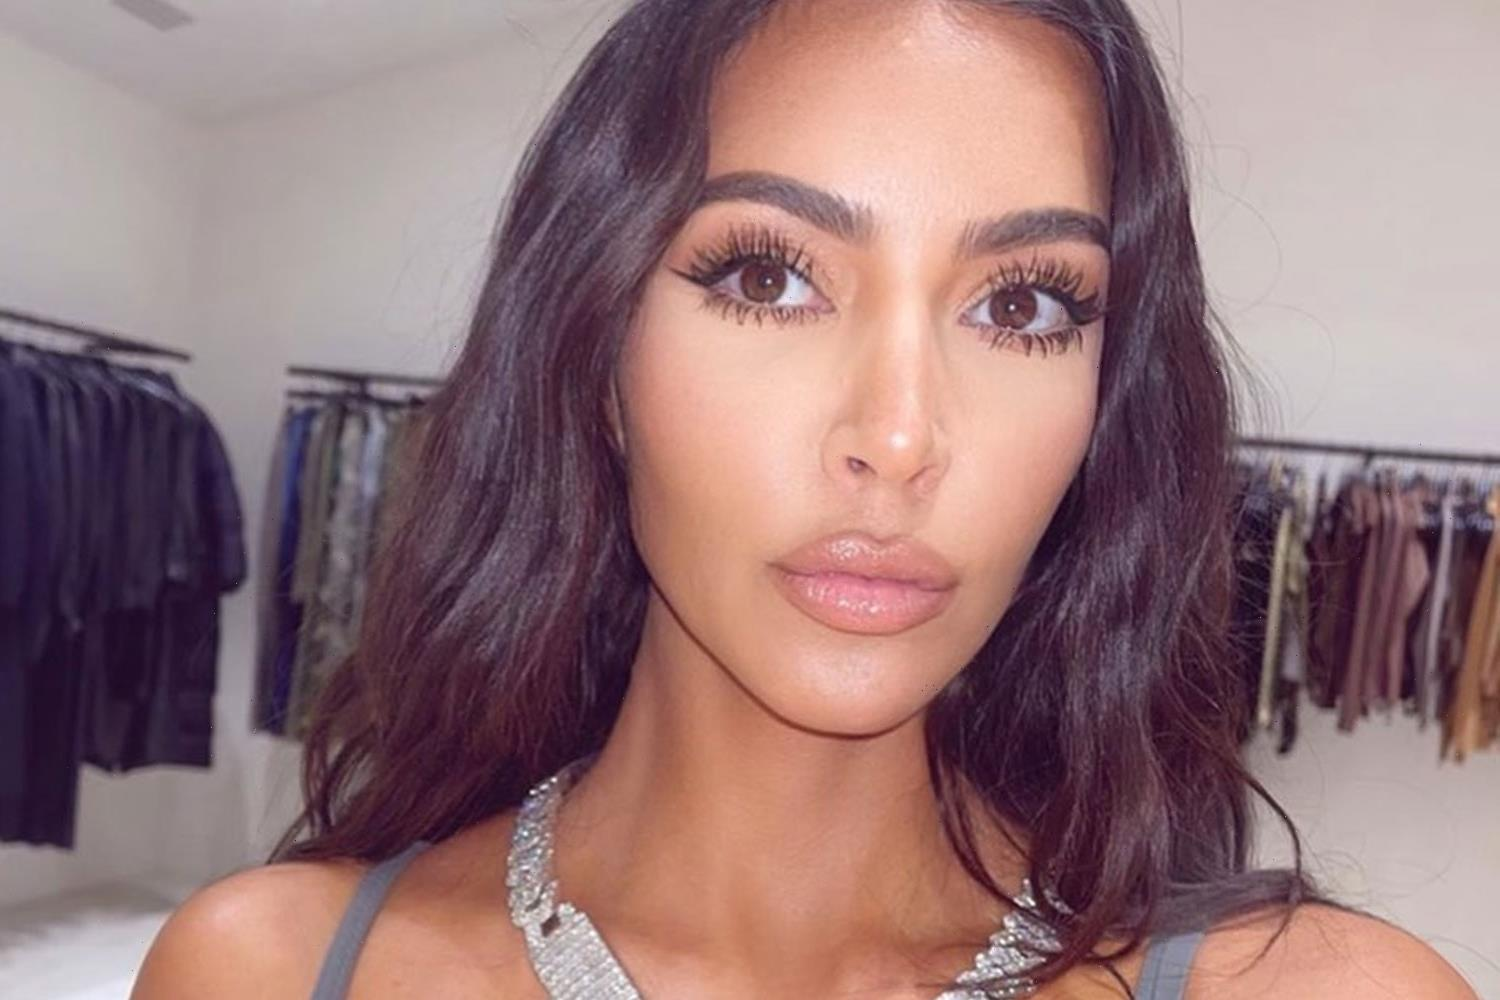 Kim Kardashian celebrates 41st birthday with her kids in 'lit' party at $60M mansion as ex Kanye West SNUBS her big day